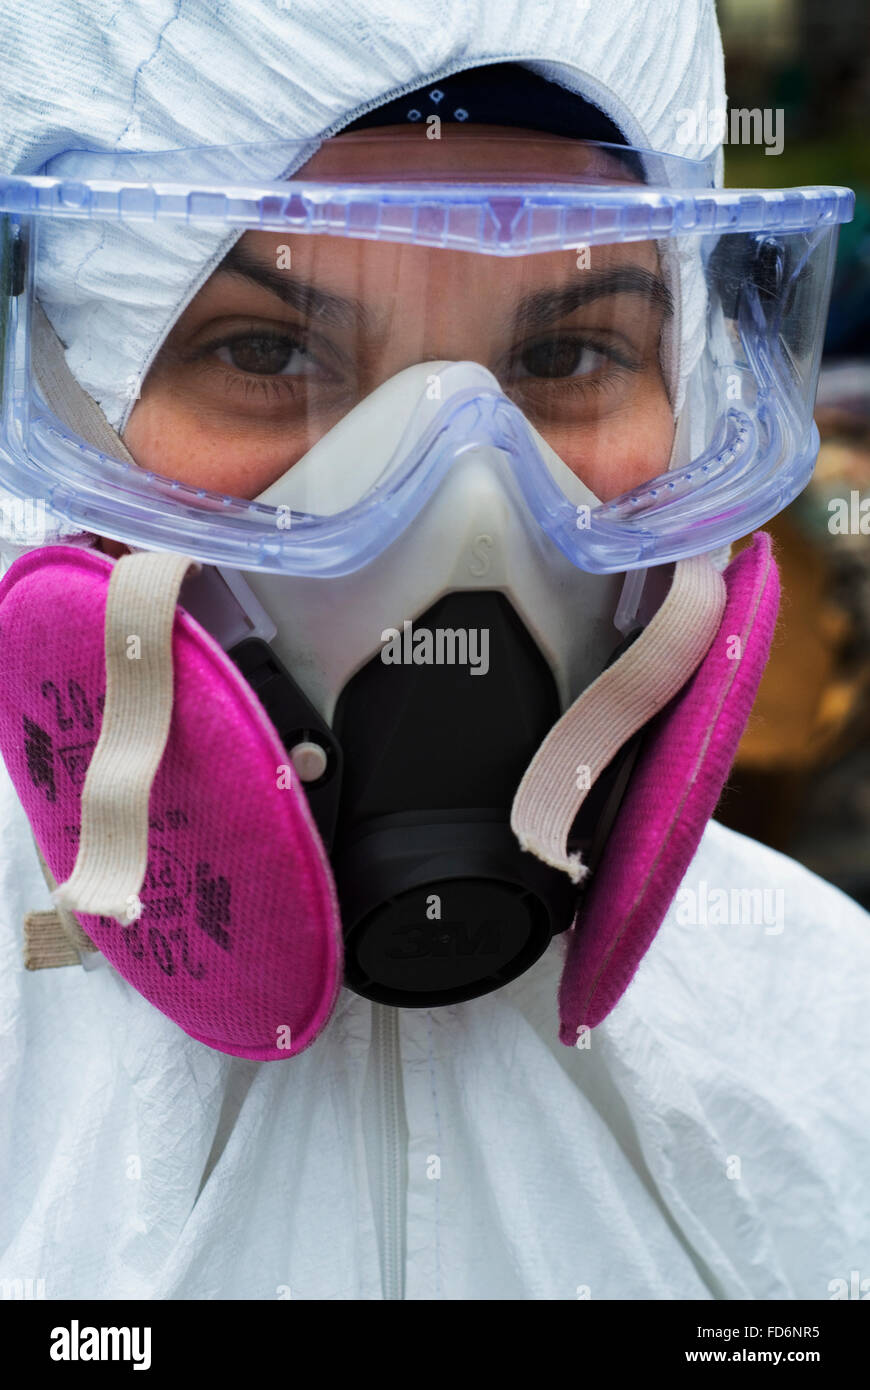 Volunteers in full protective gear strip heavily molded drywall and contents from Saint Bernard Parish homes. - Stock Image